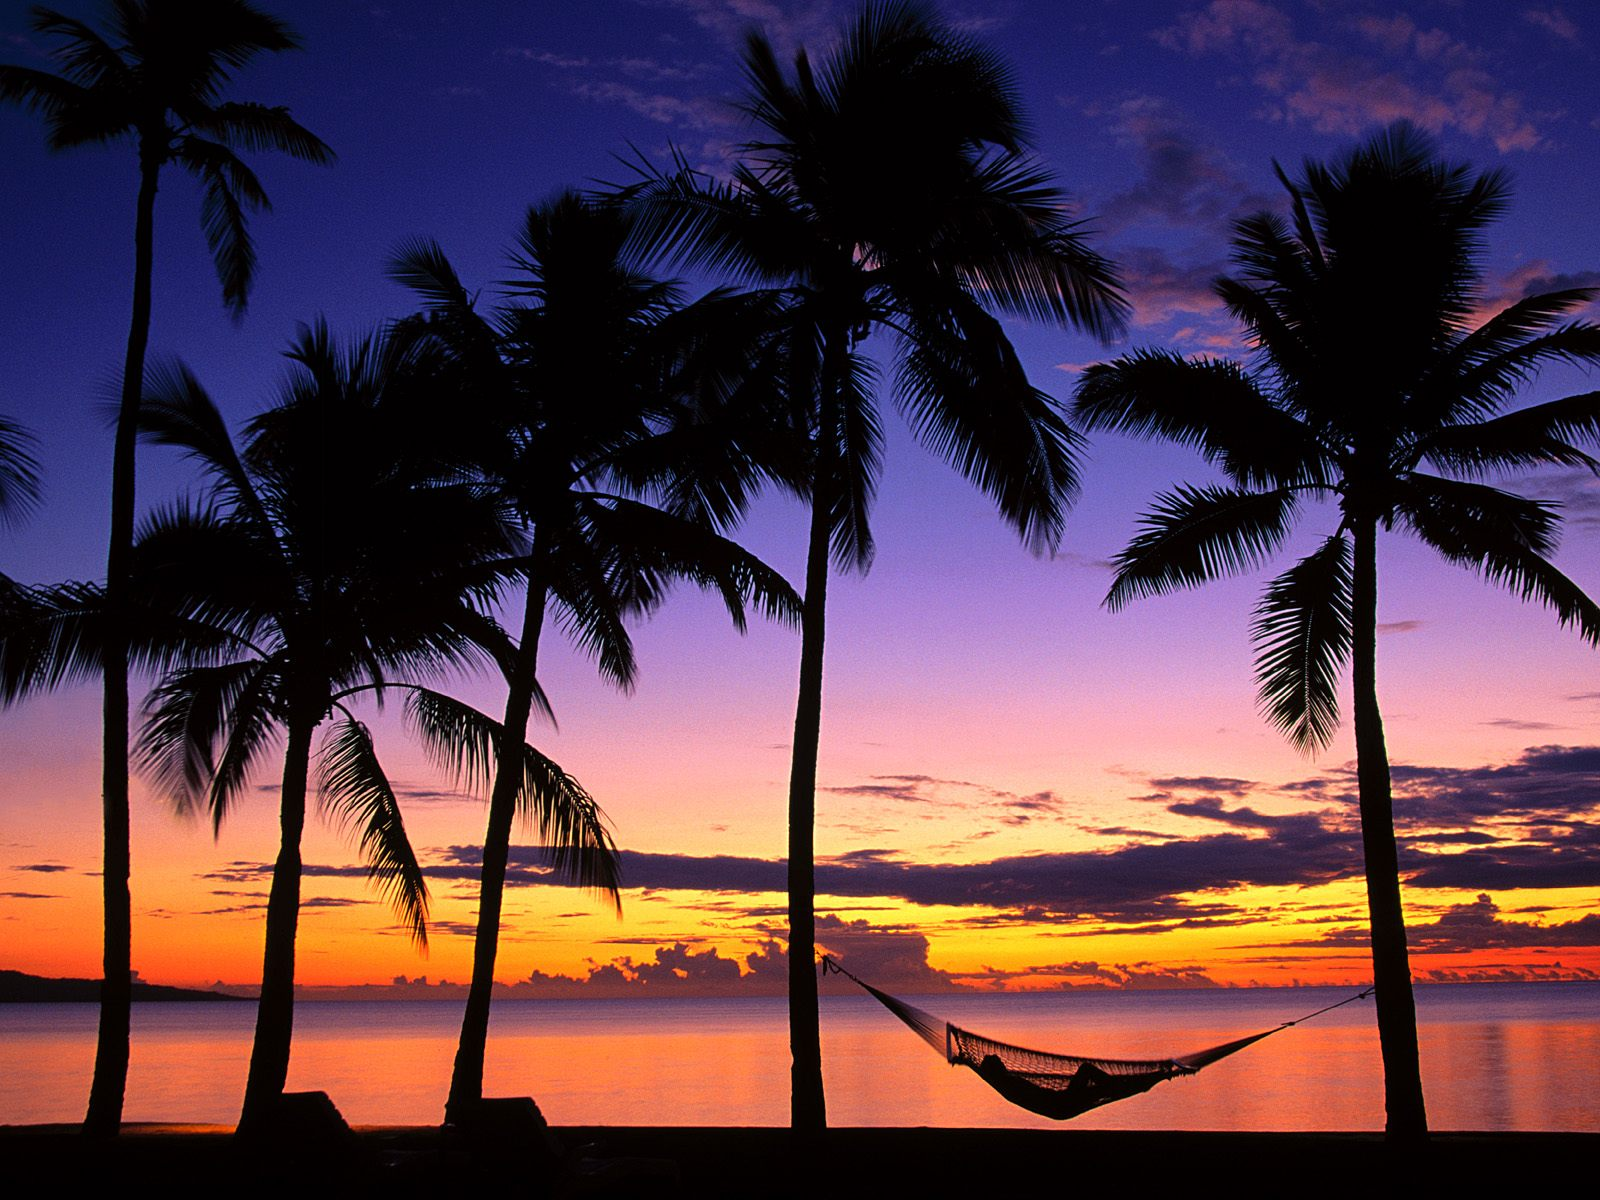 Tropical Island Sunset Wallpaper wwwimgkidcom   The 1600x1200